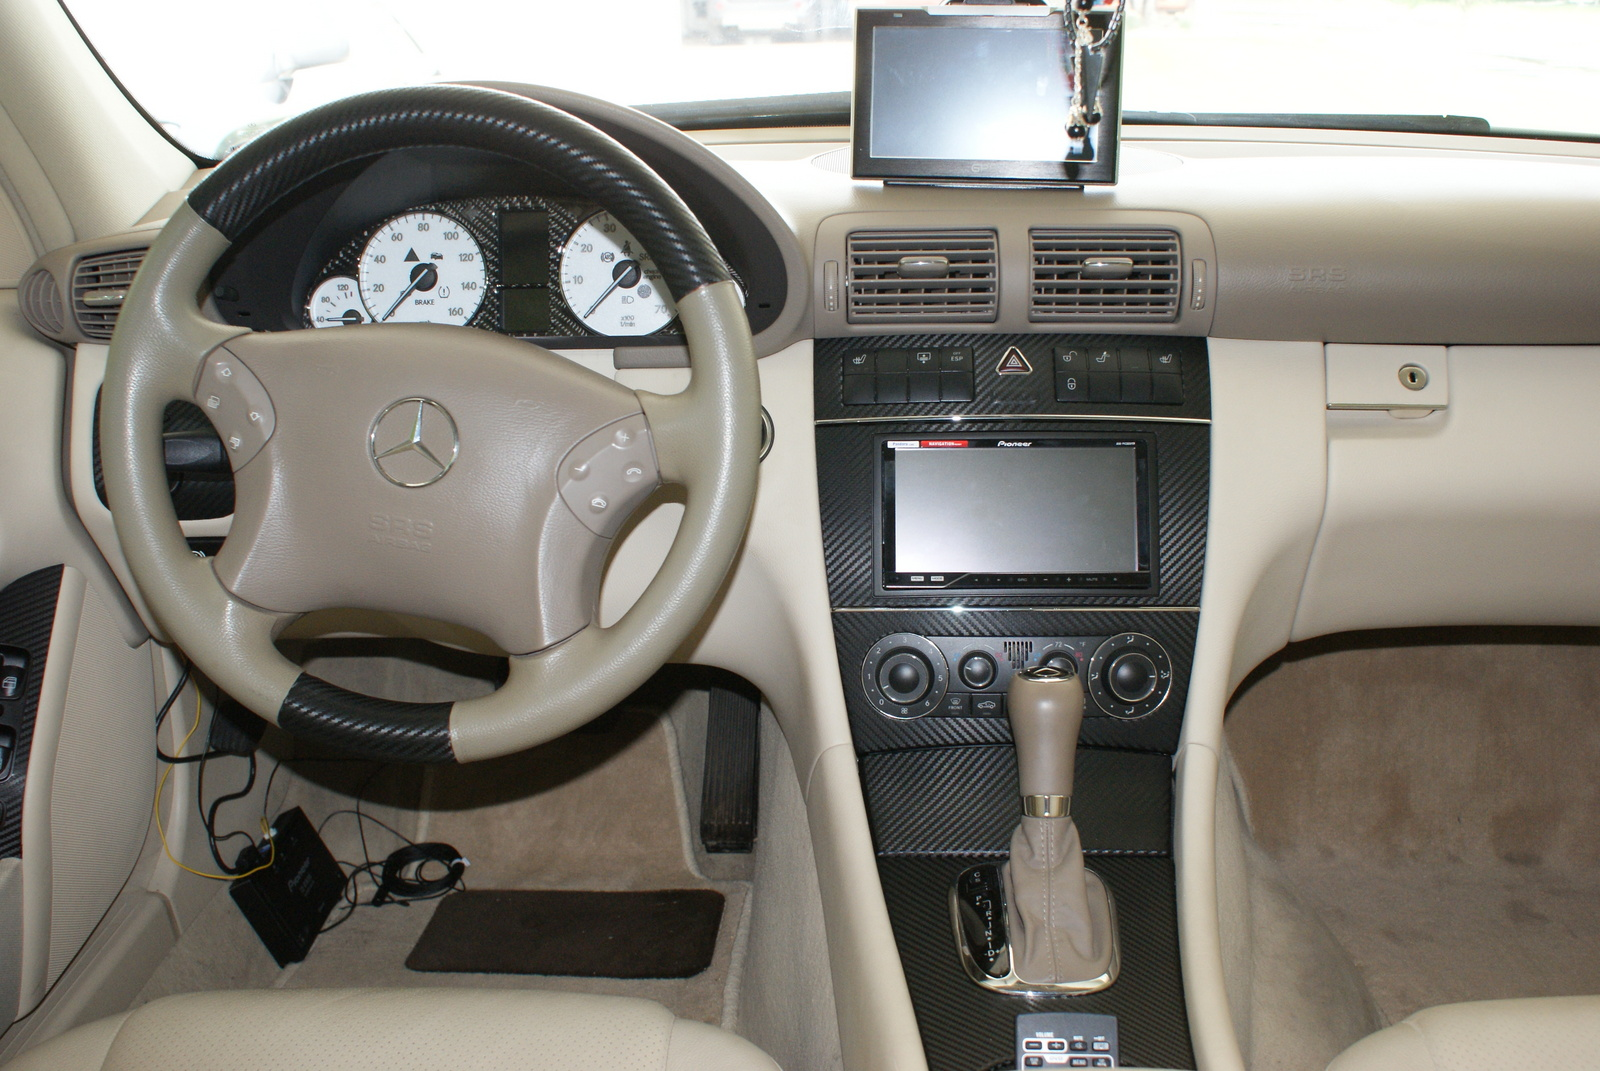 2006 Mercedes-benz C-class - Pictures